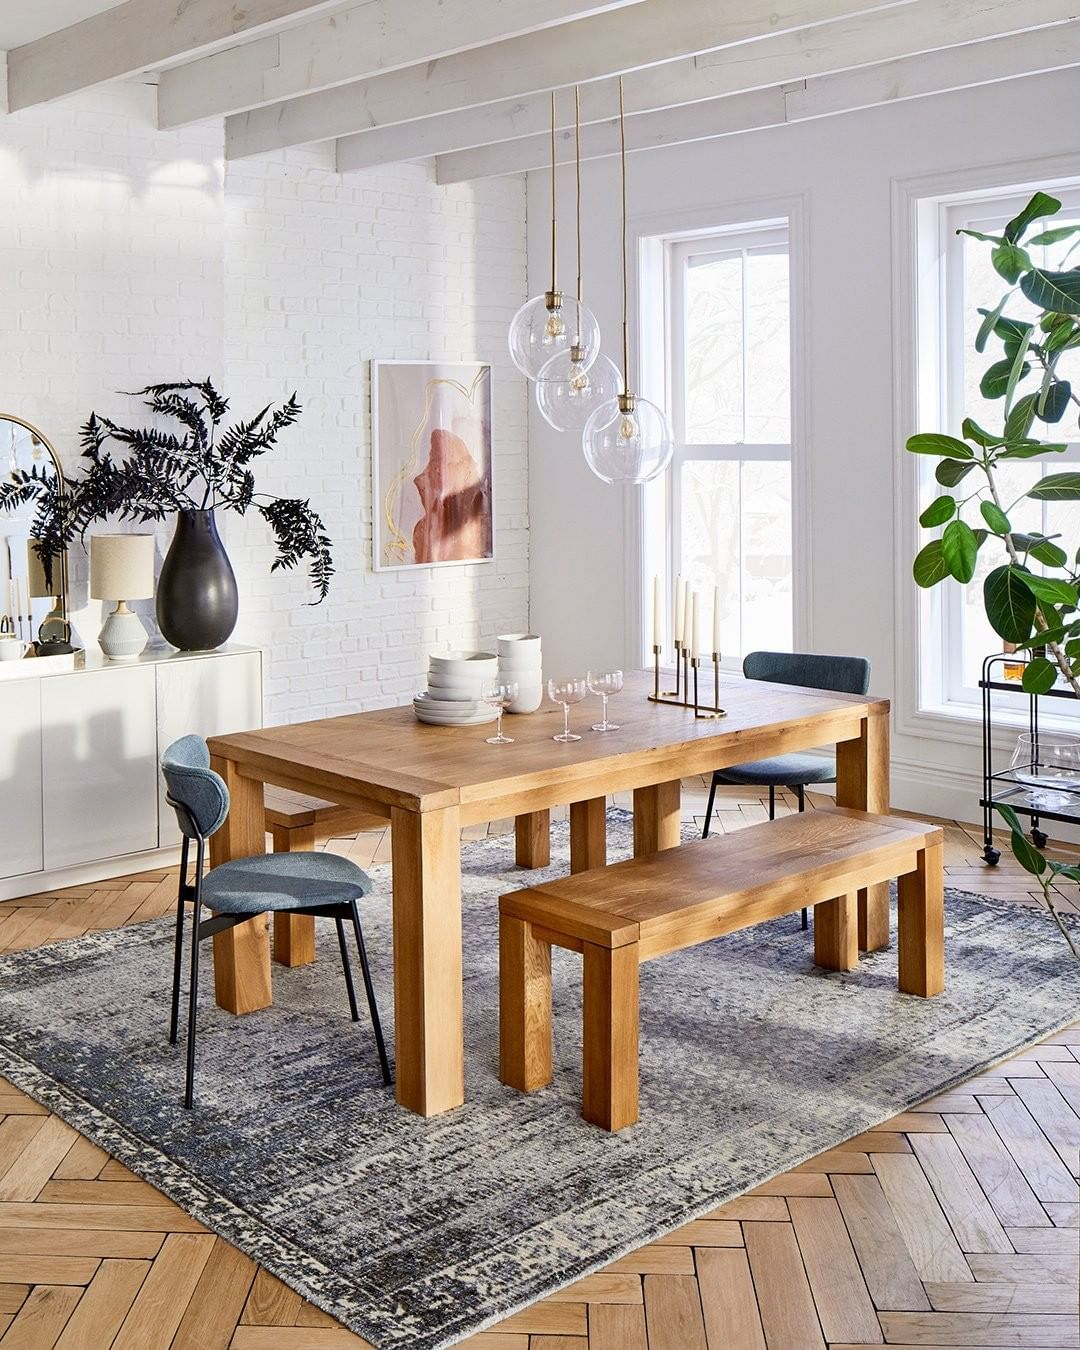 West Elm Furniture Decor On Instagram The New Tahoe Dining Table Is A Natural Beauty Made From Su Oak Dining Table Dining Table Solid Wood Dining Table